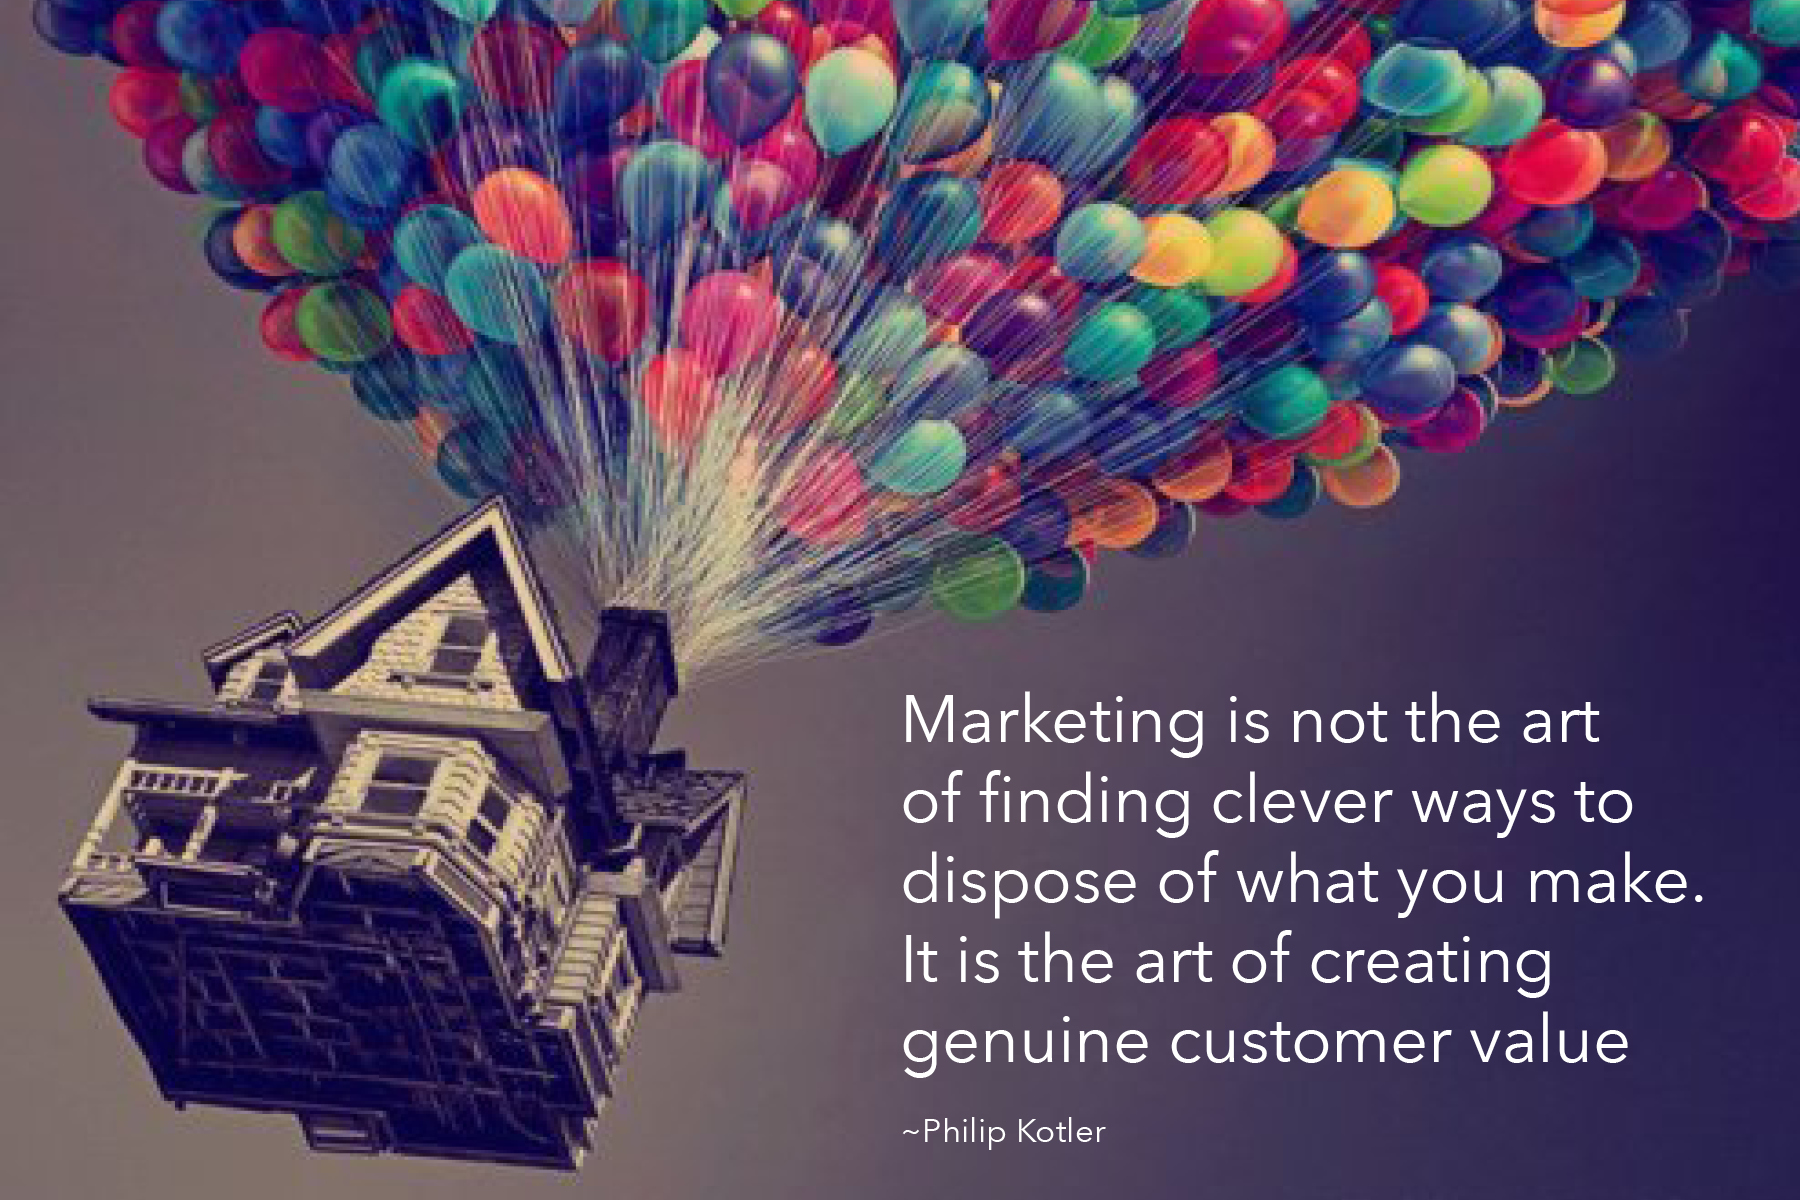 Marketing quote.jpg